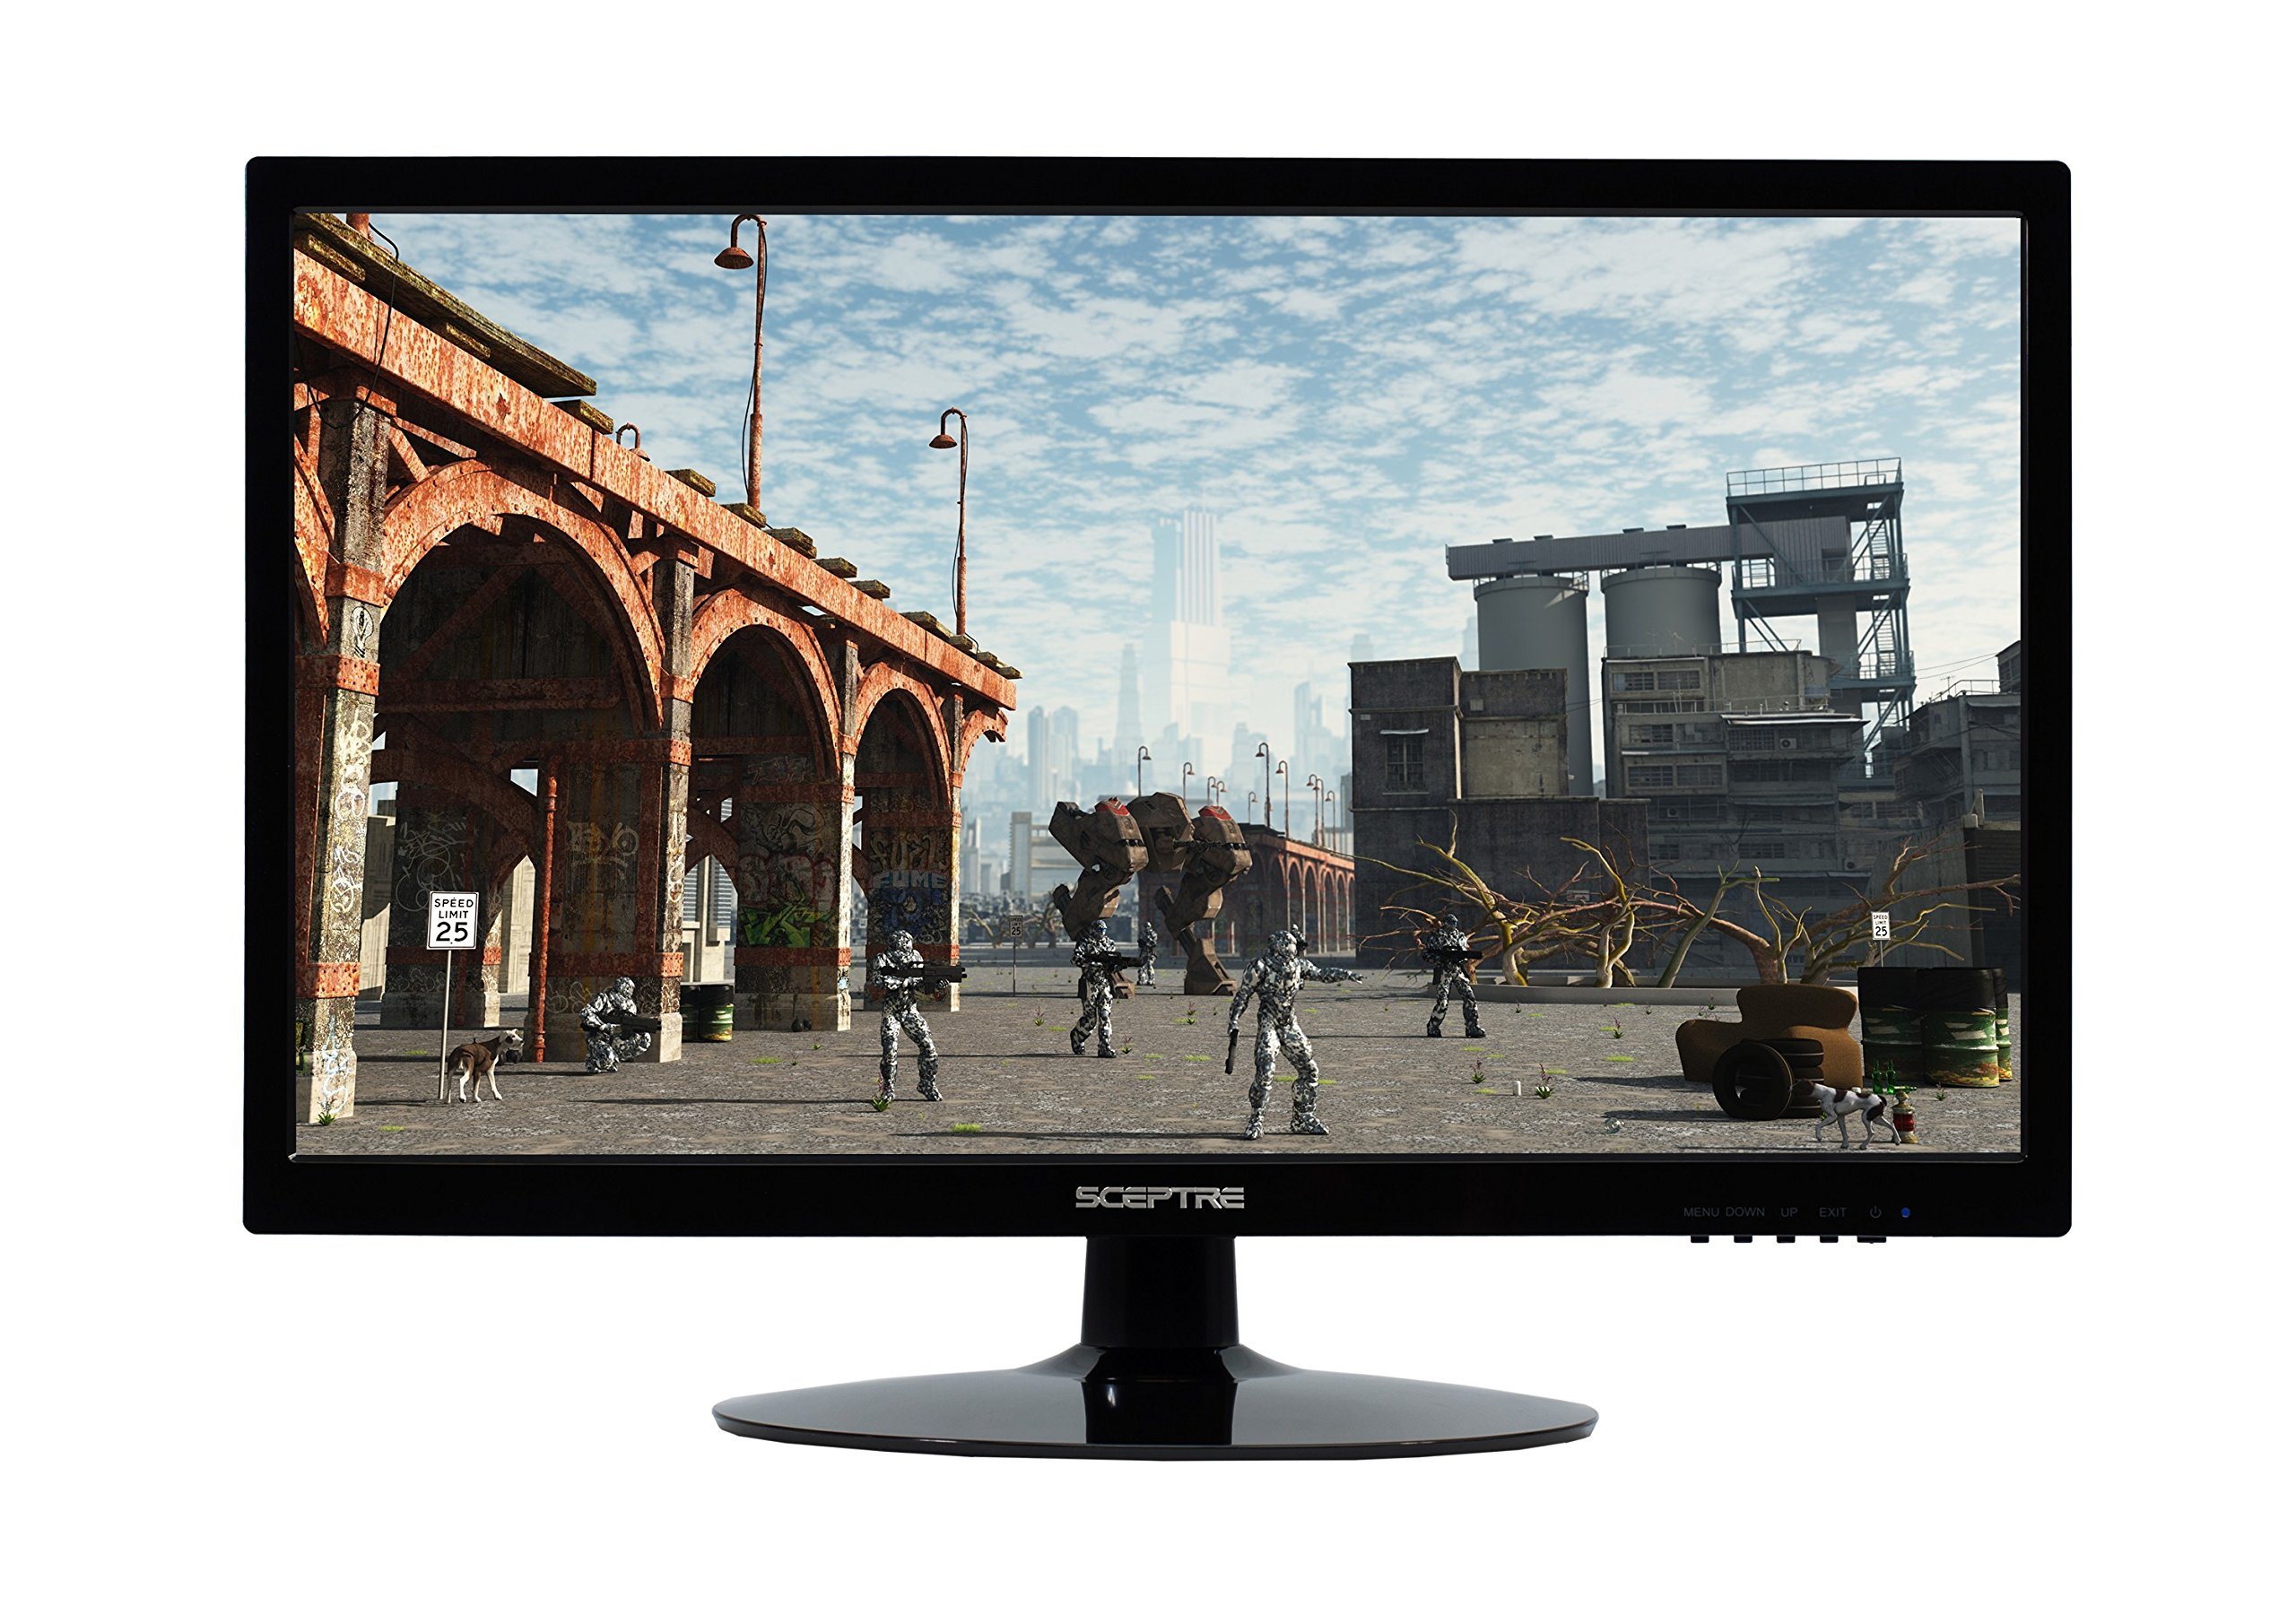 Sceptre E Series 20-inch Screen LED-Lit Monitor (E205W-16009A)